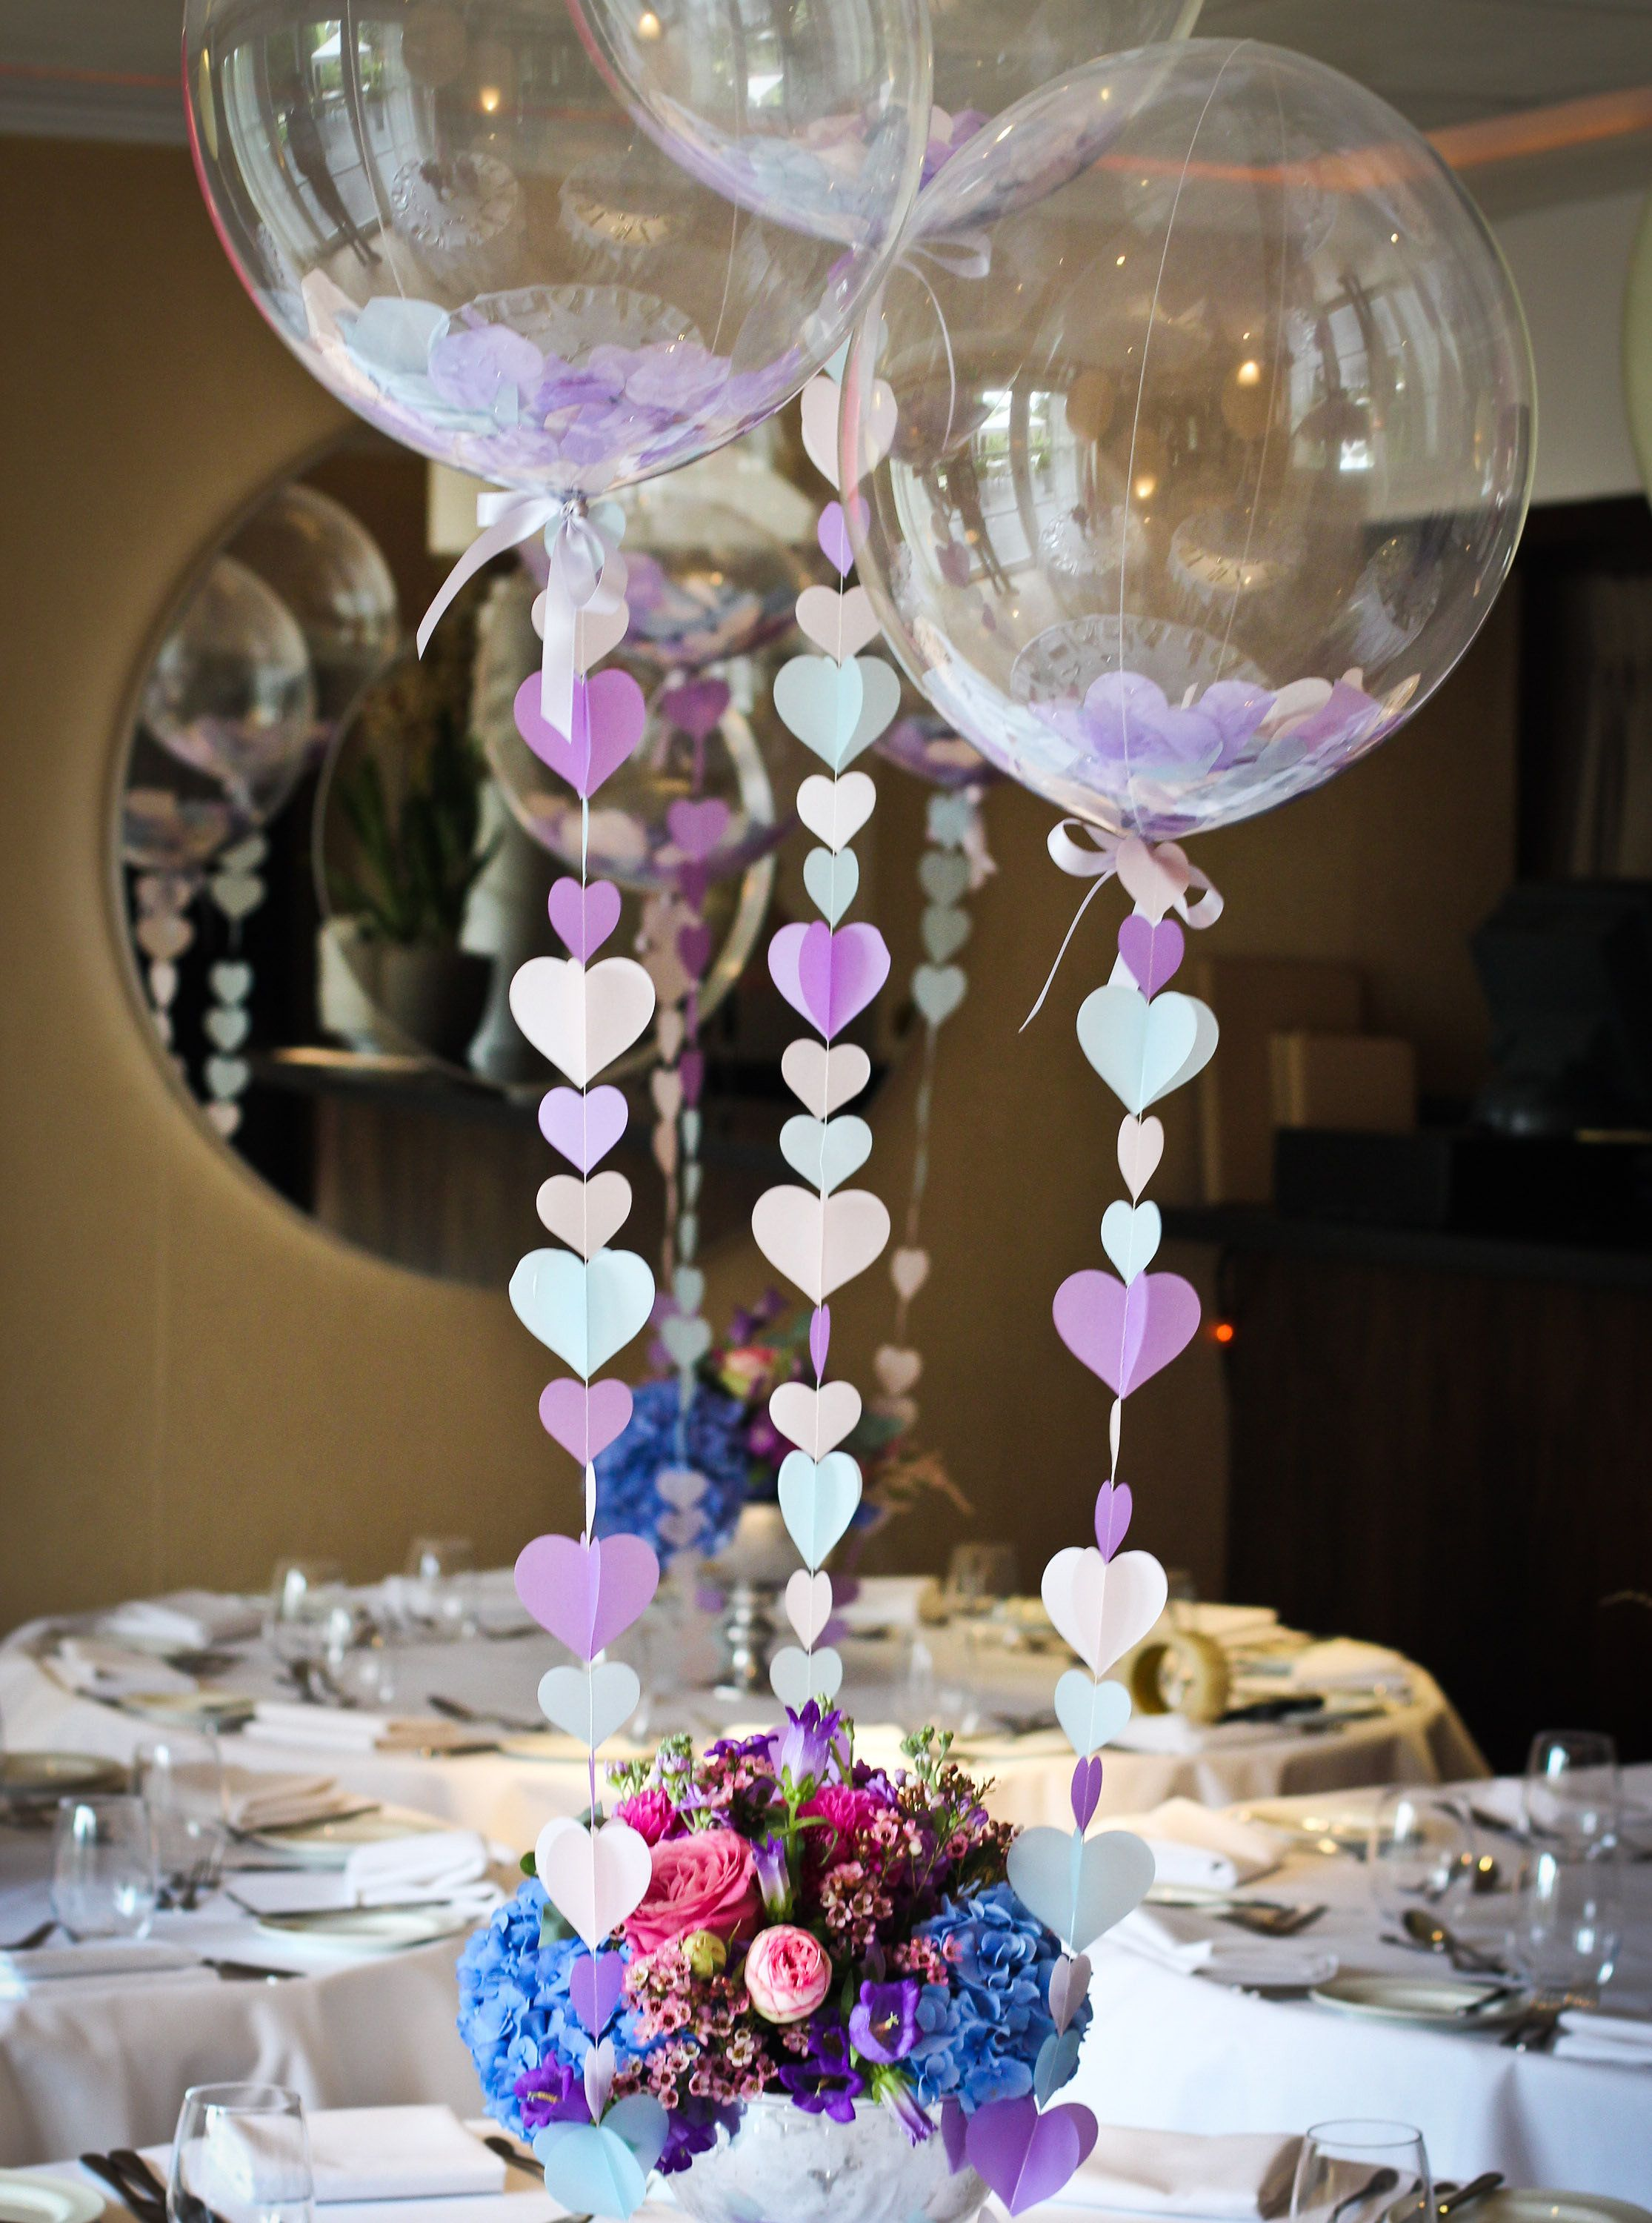 Table decoration for party - Balloon Centrepiece Table Decoration With Heart Strings For A Wedding Anniversary Party